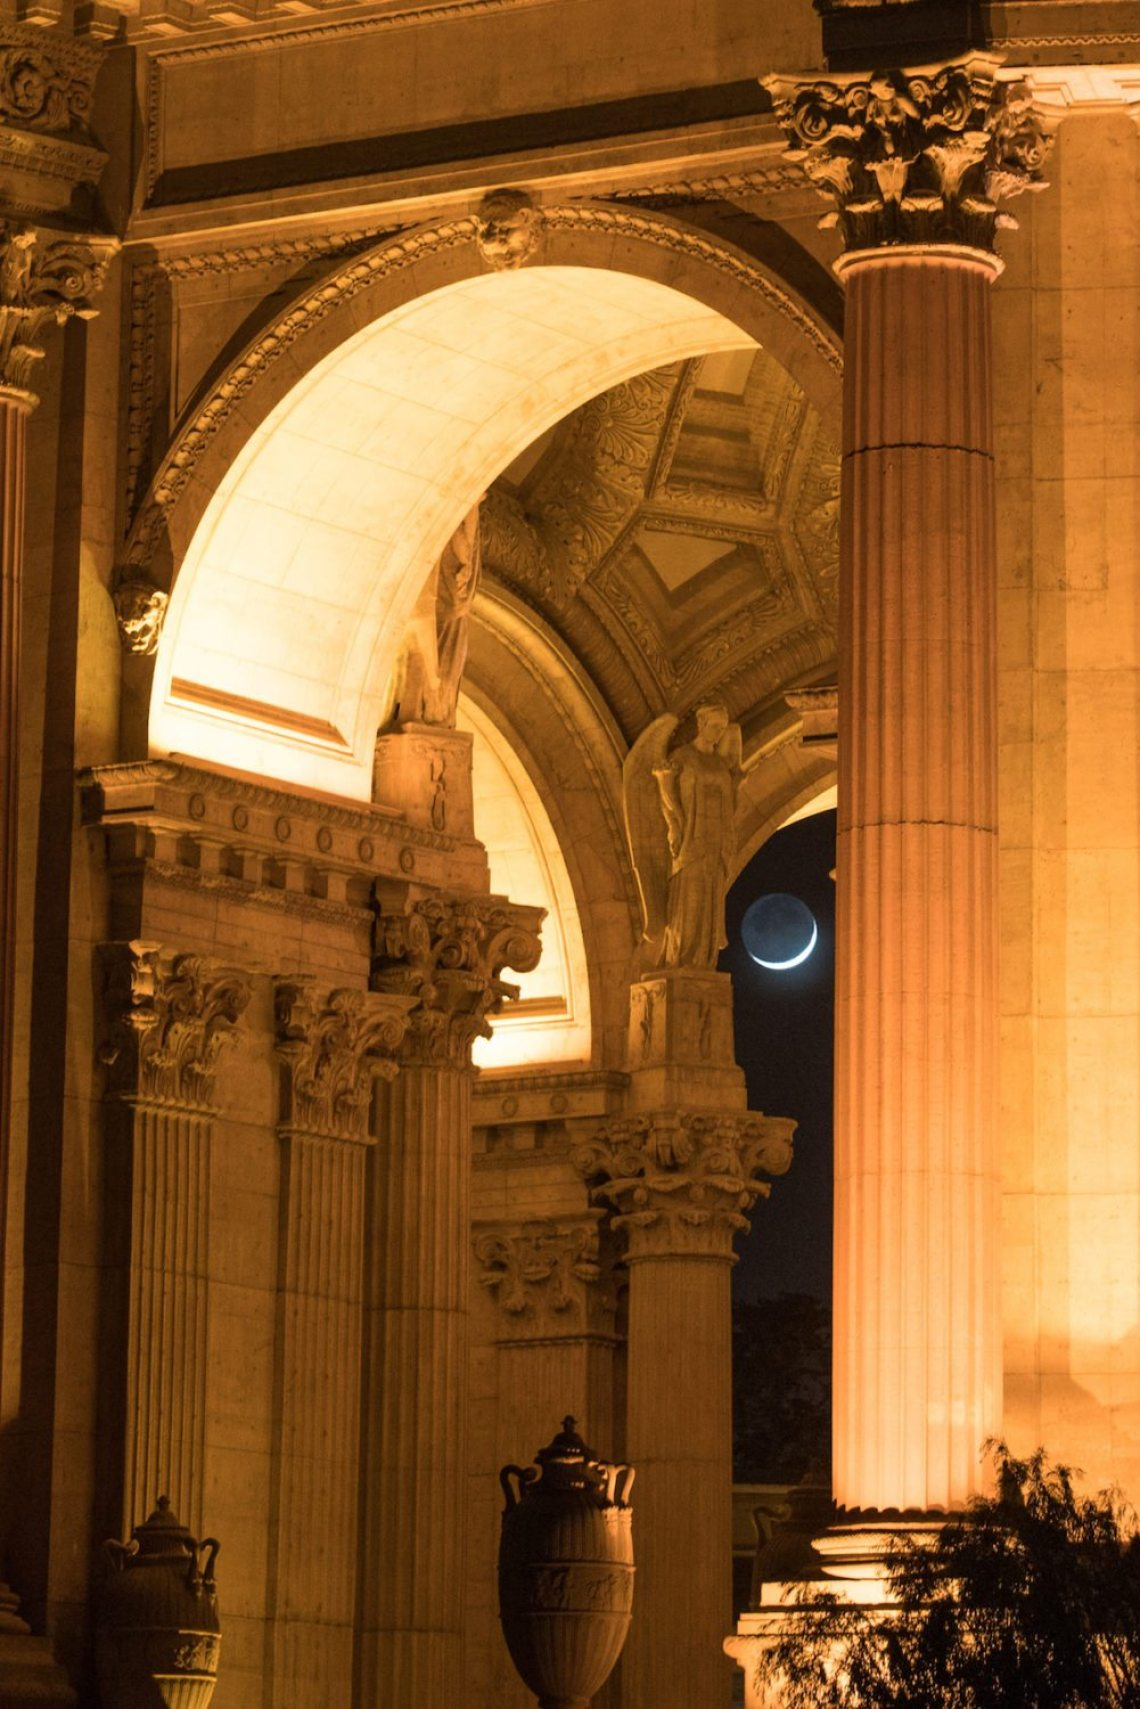 """Caught the moon showing it's waxing face through the palace arches."" Photo: Jake Landon, @jakelandon. #SFGuide Featured Photographer."